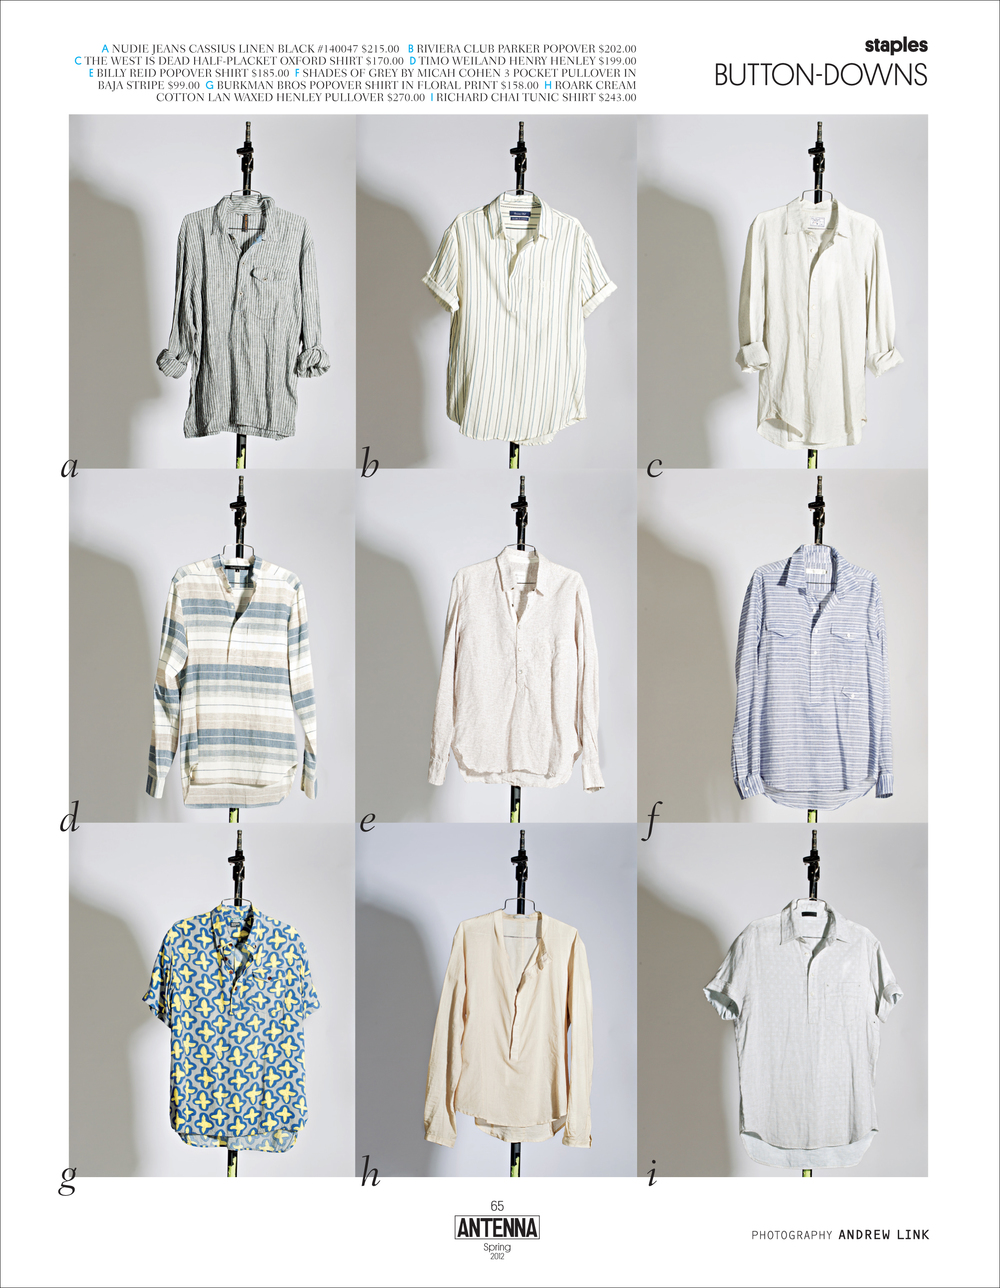 19 staples buttondowns.jpg